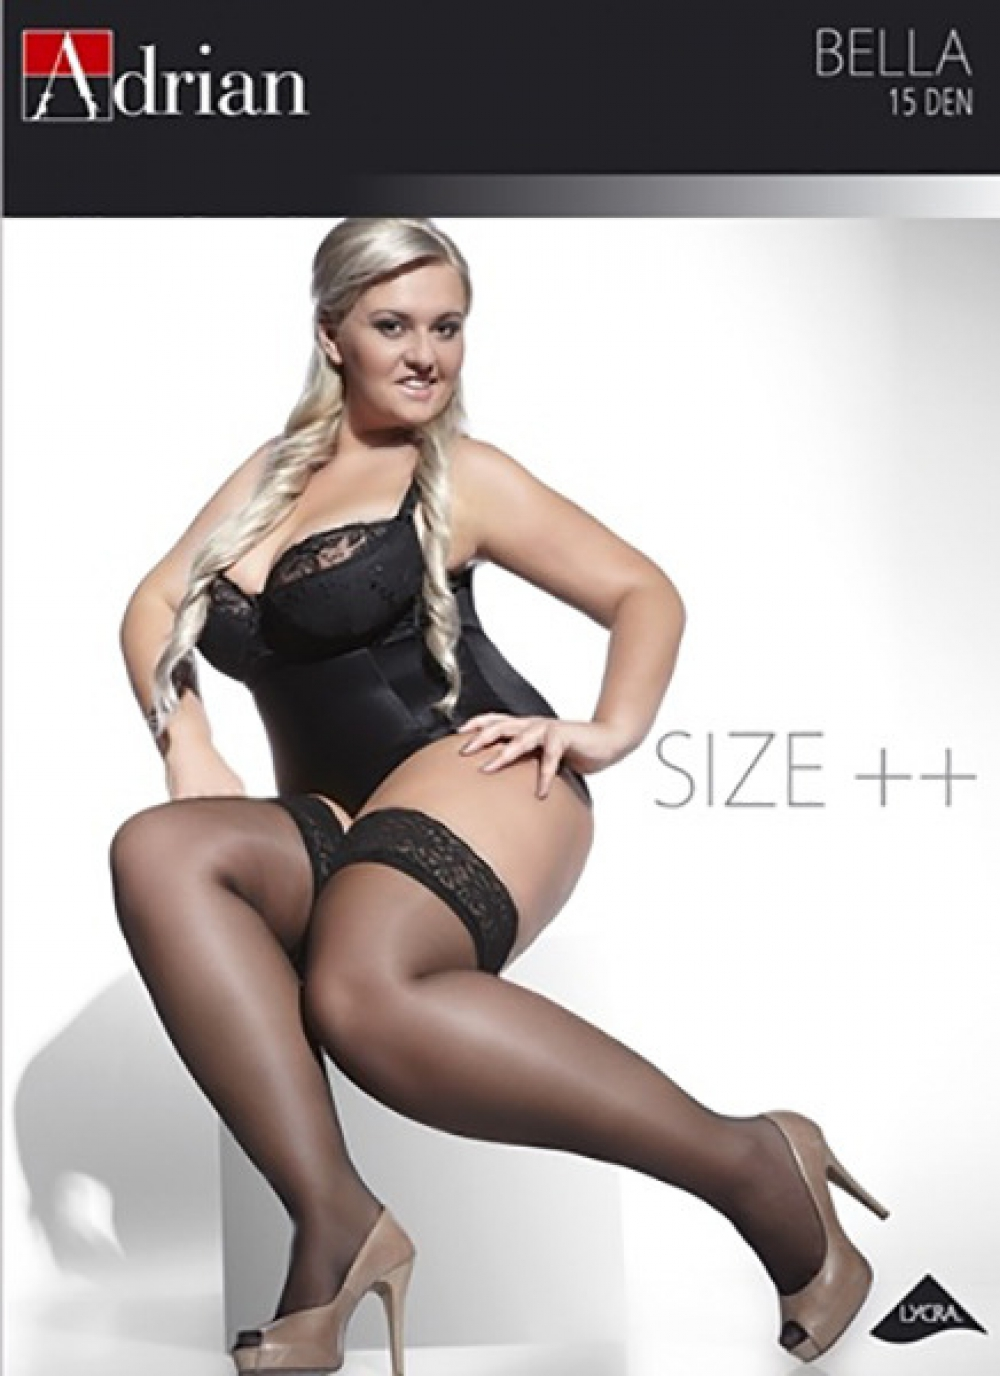 plus size 15d sheer lace top stockings hold ups adrian. Black Bedroom Furniture Sets. Home Design Ideas